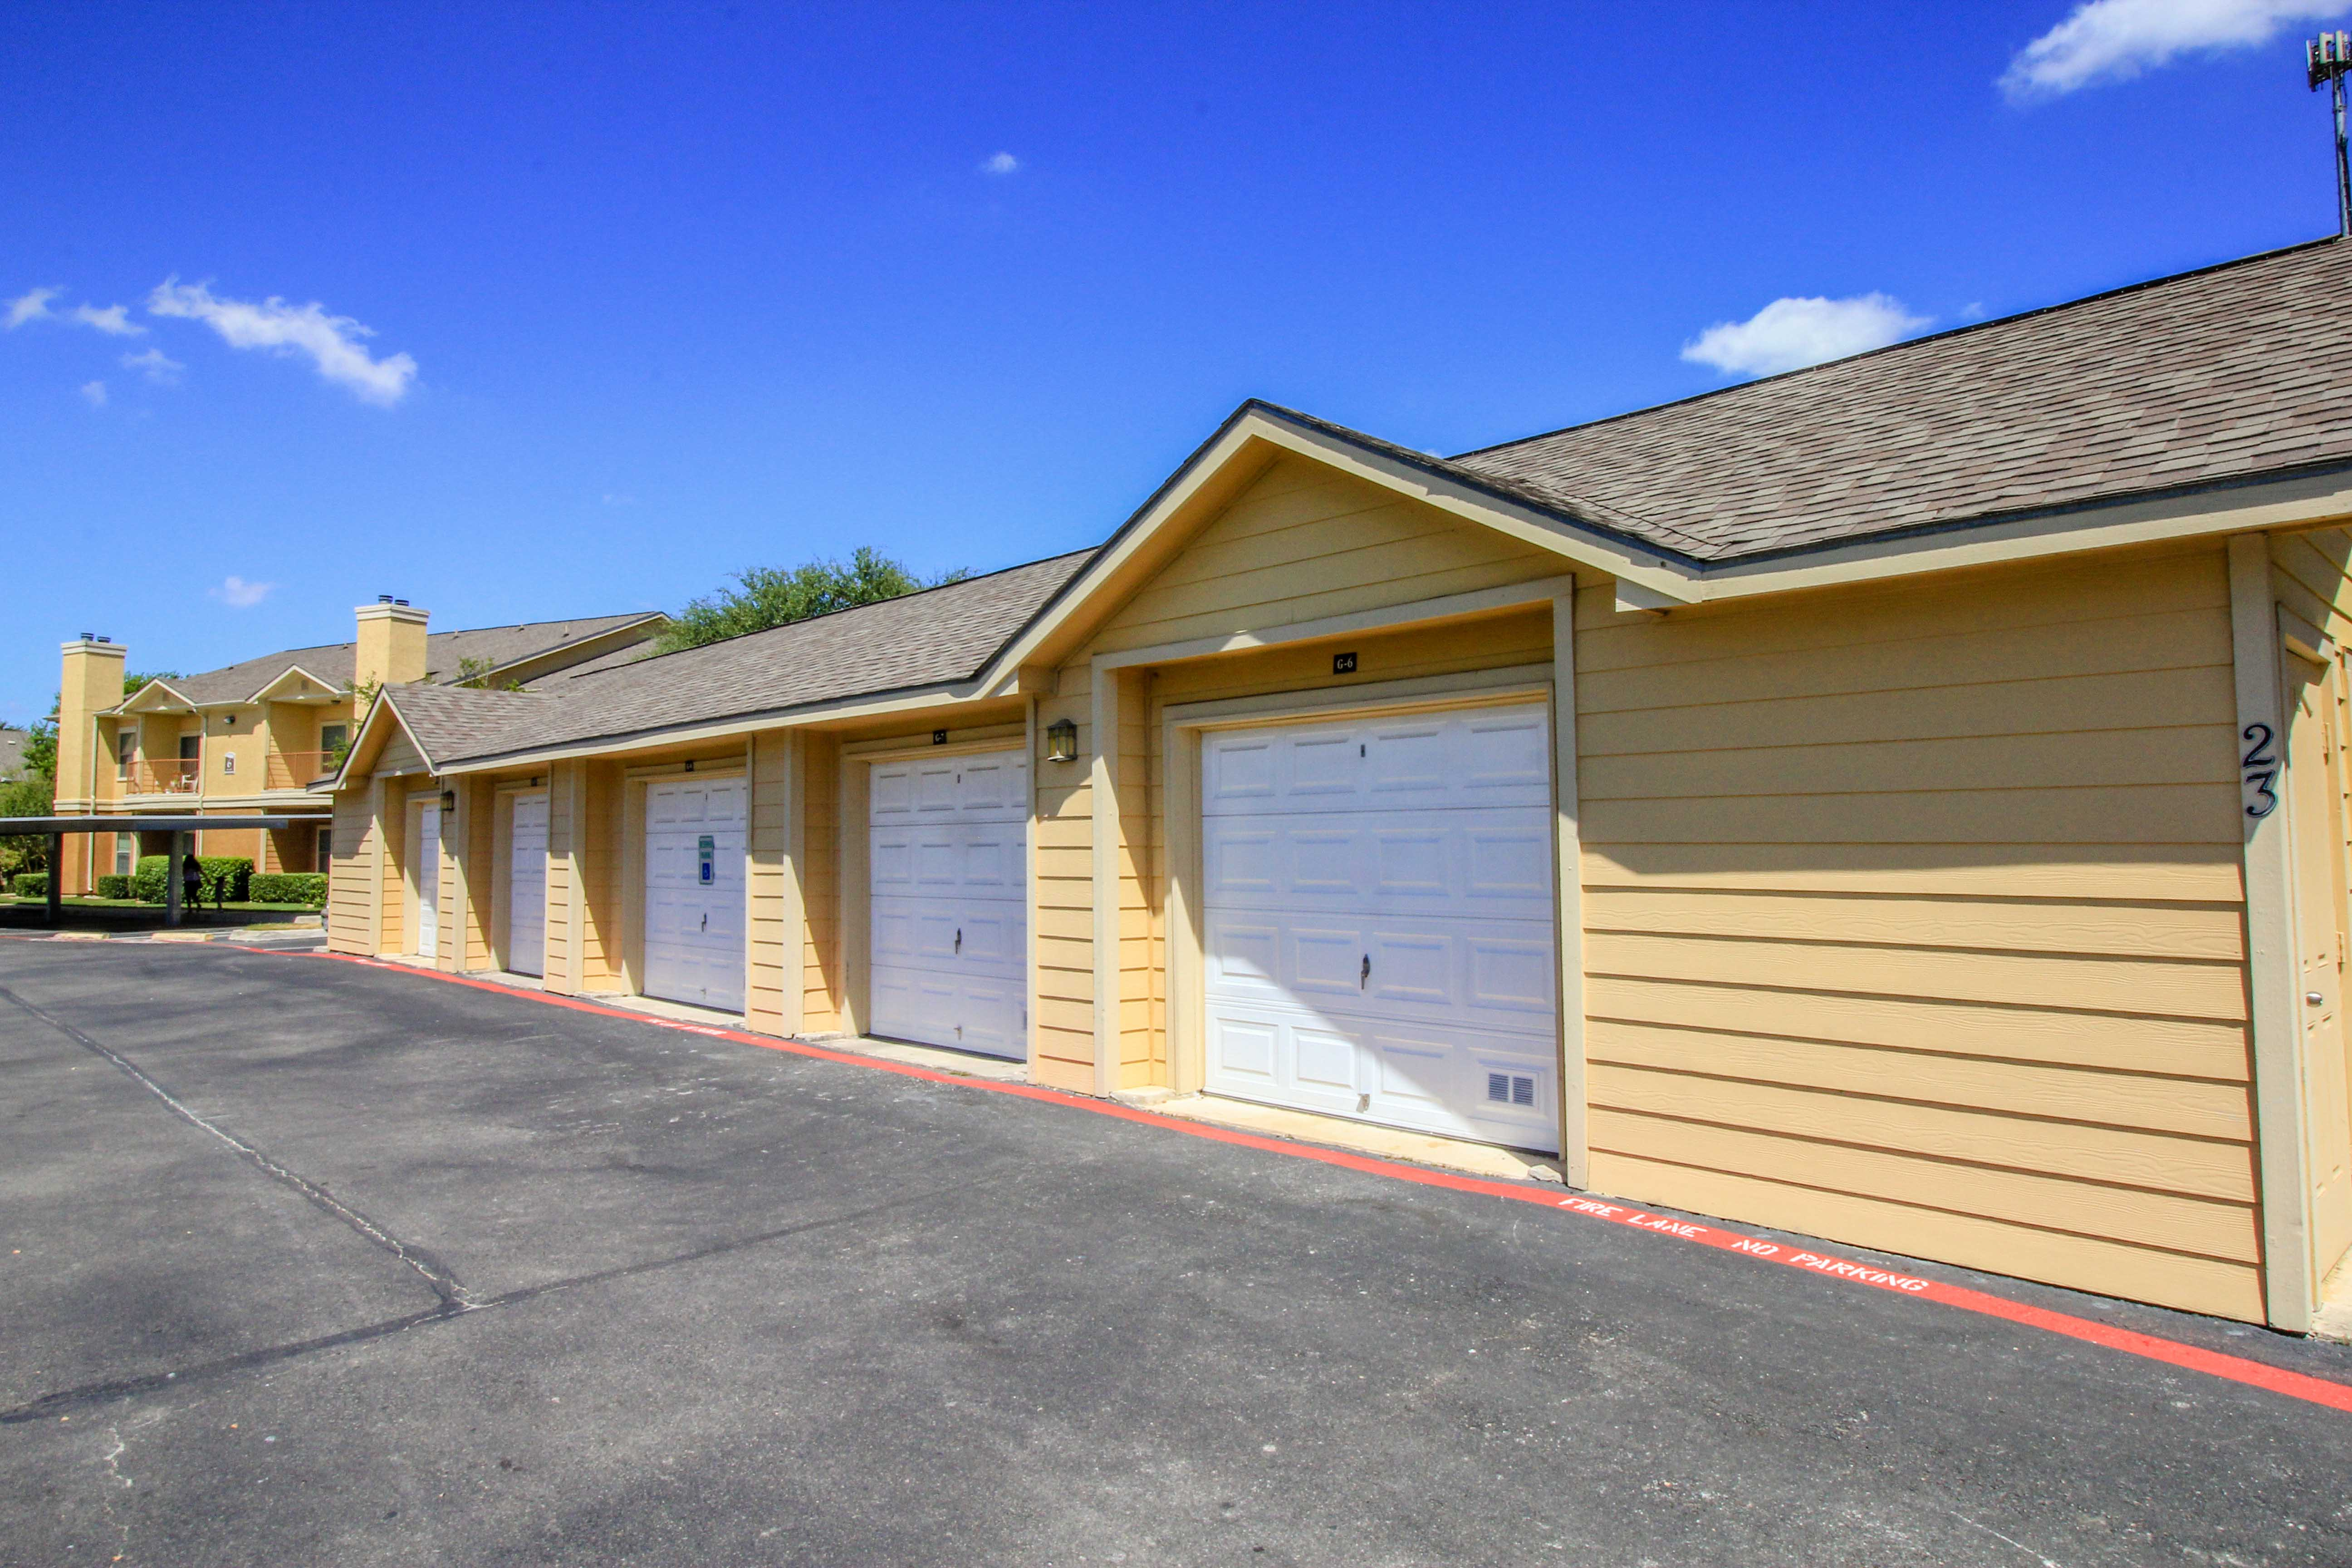 Garages, Storages and Covered Parking at The Oxford at Estonia Apartments in San Antonio, TX